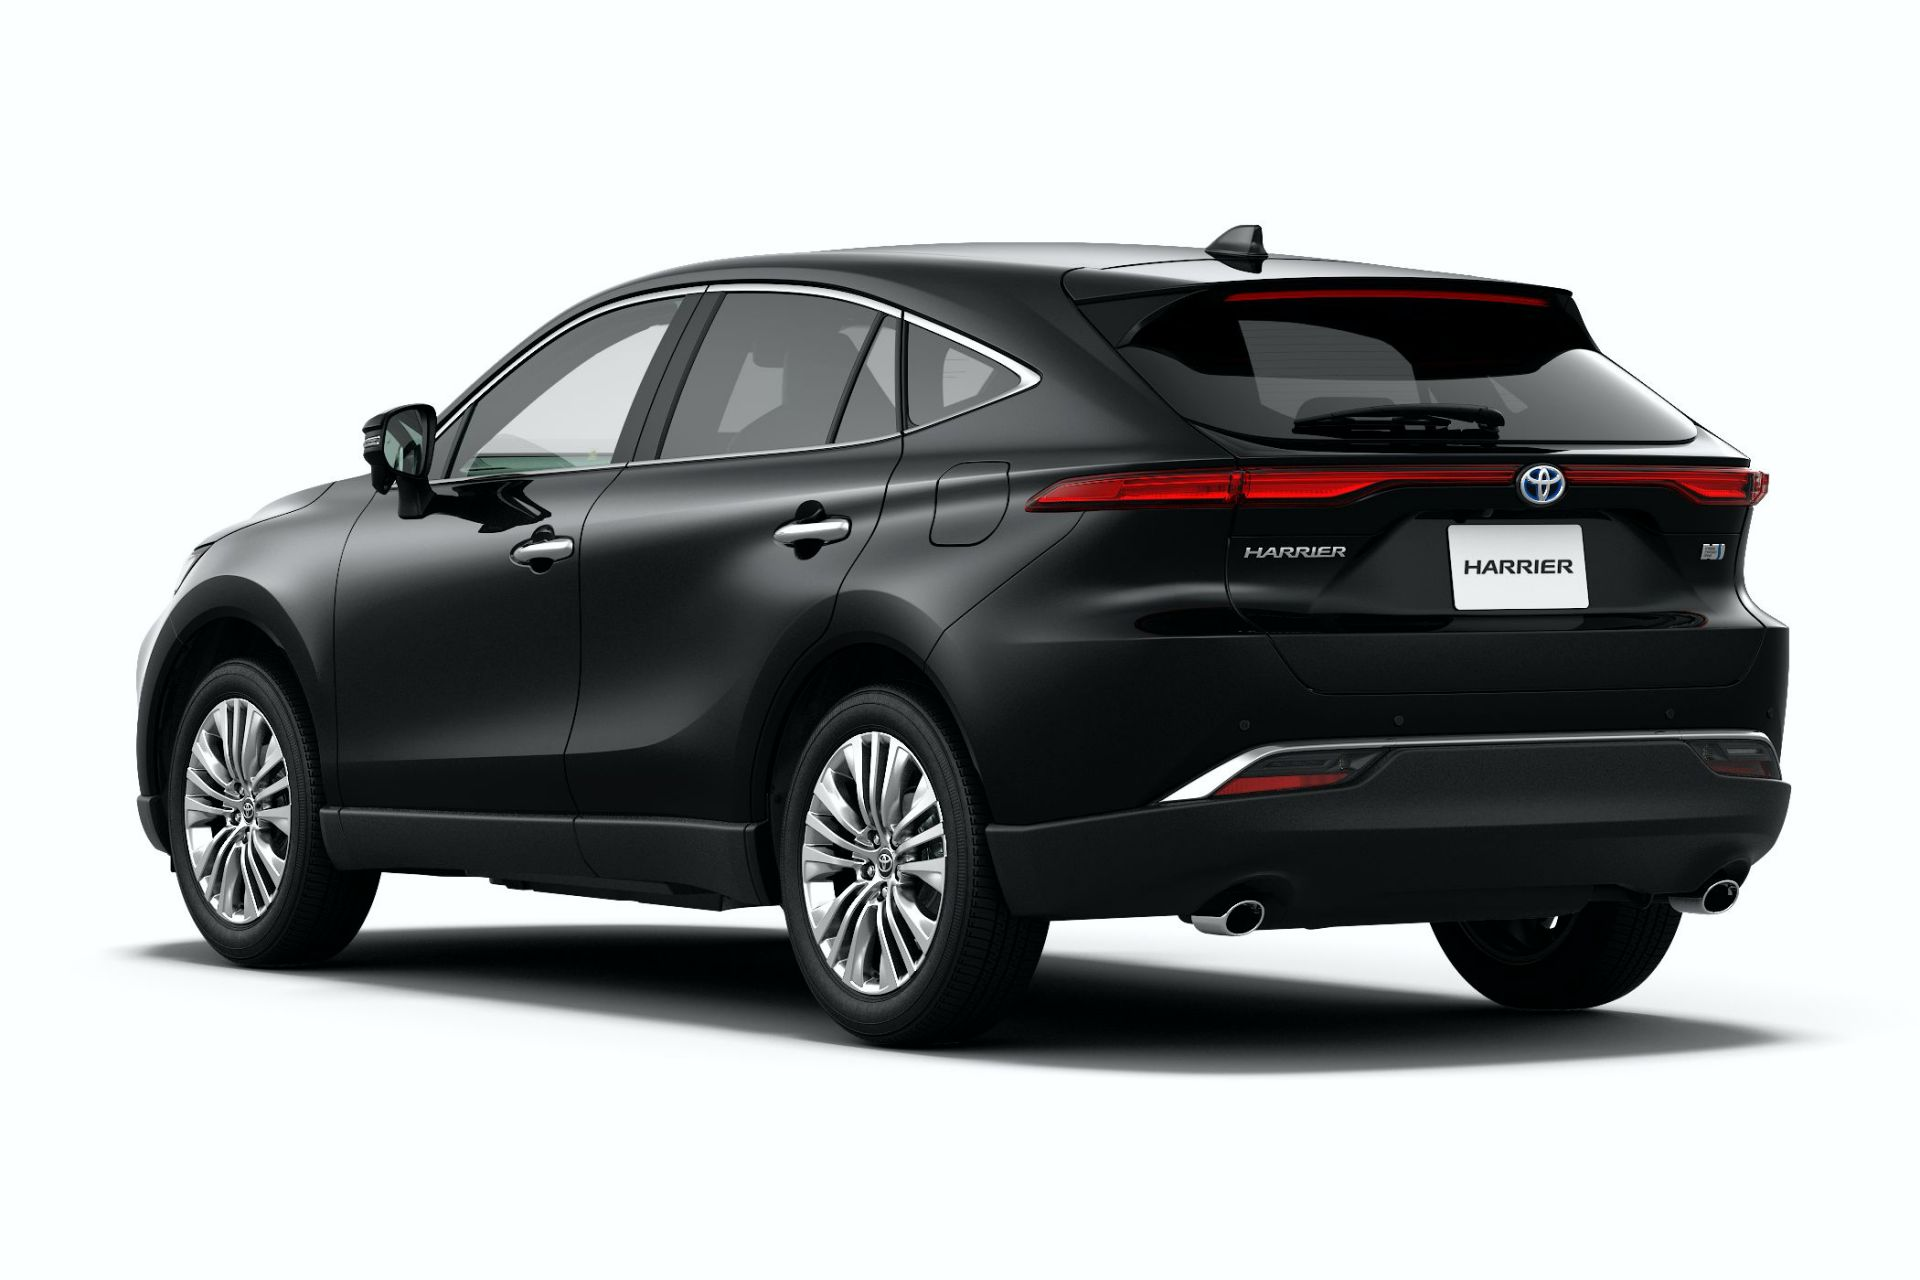 2020_Toyota_Harrier_0022